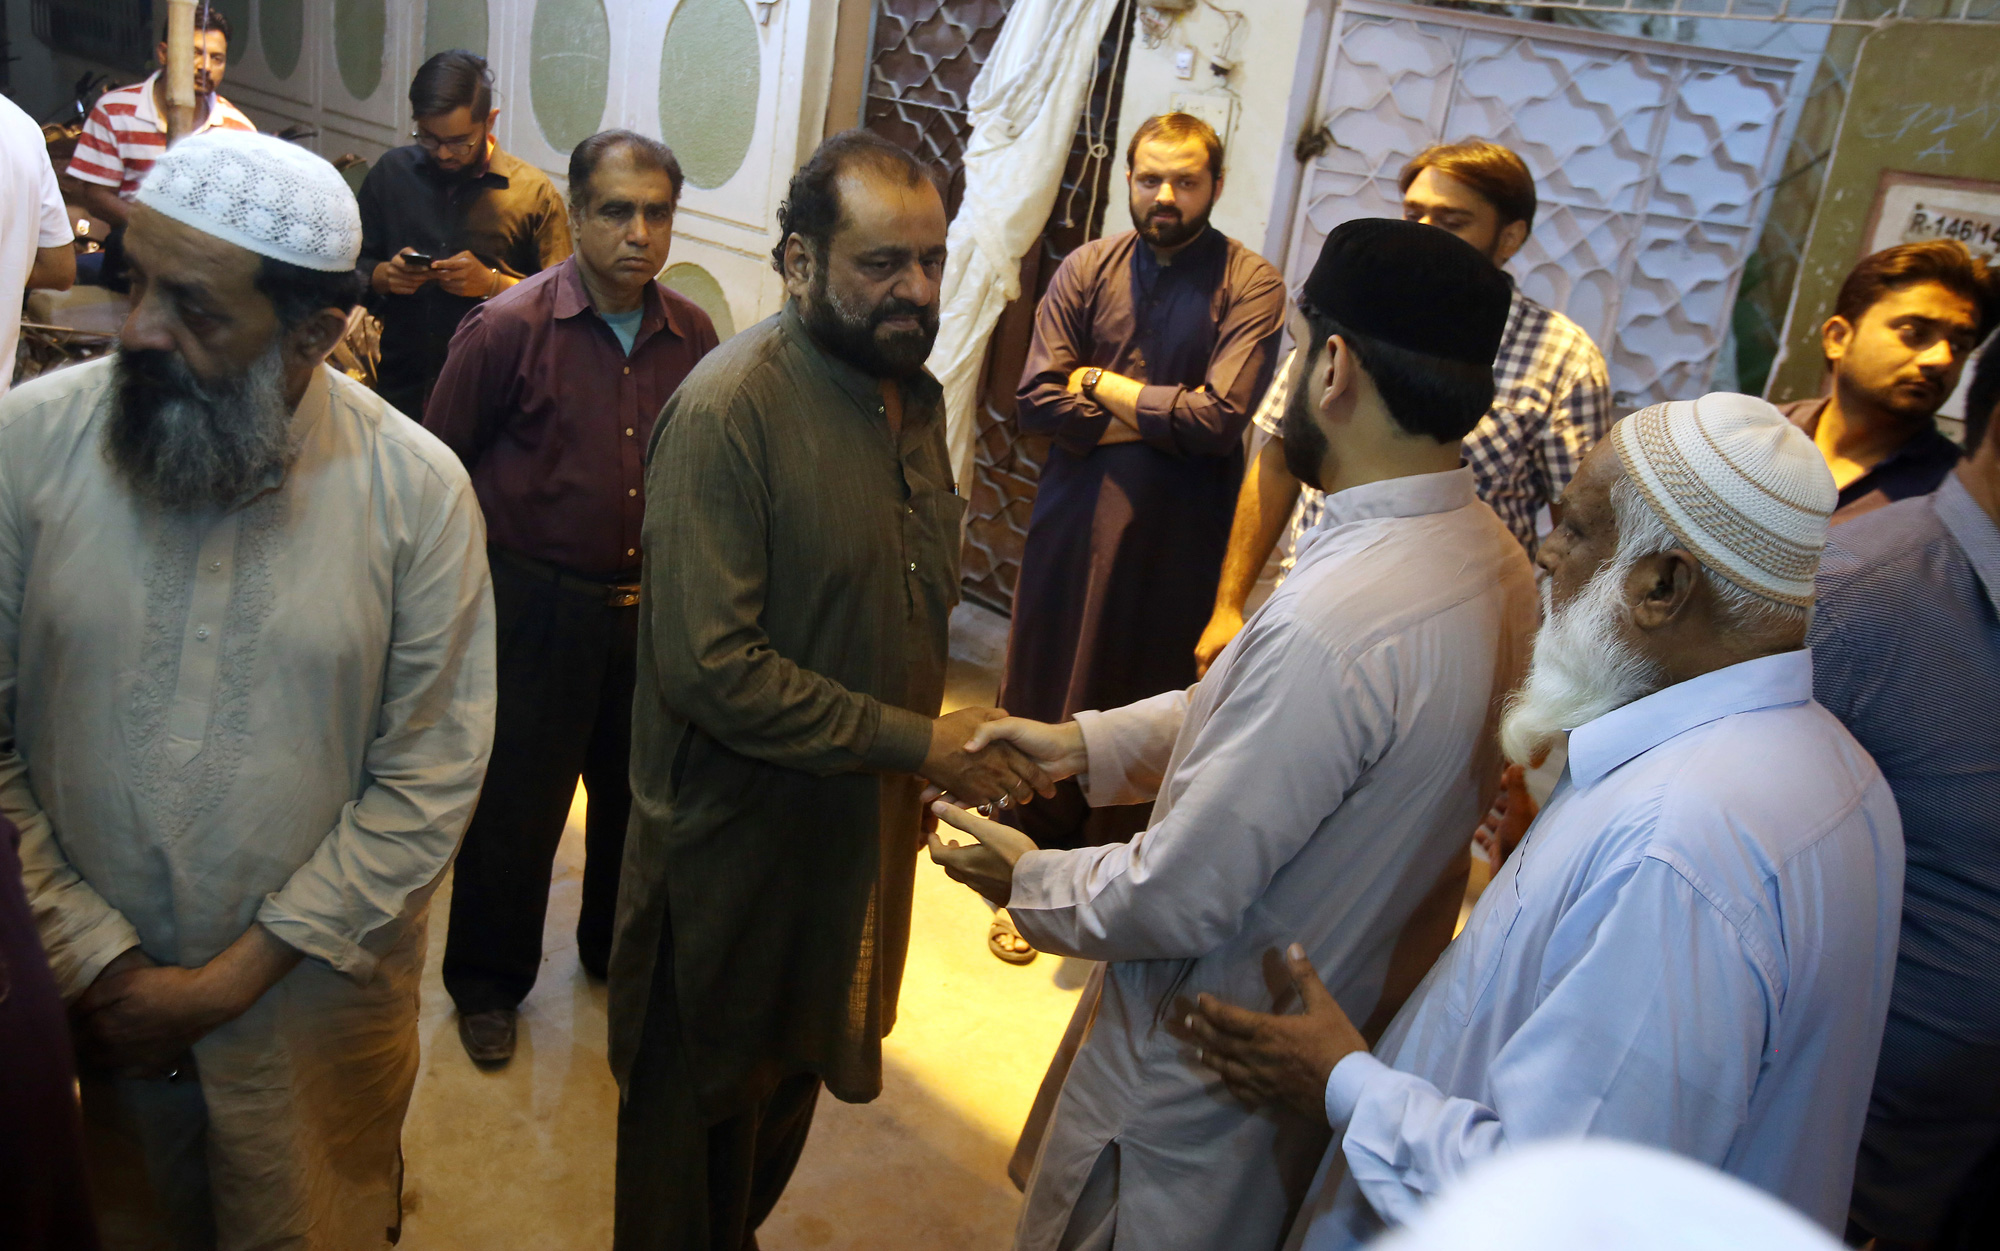 Relatives and neighbours offer condolance to Syed Ayaz Ahmed, father of Syed Areeb Ahmed, a Pakistani citizen who was killed at the Christchurch mosque shooting, at his home in Karachi, Pakistan on Saturday, March 16, 2019.